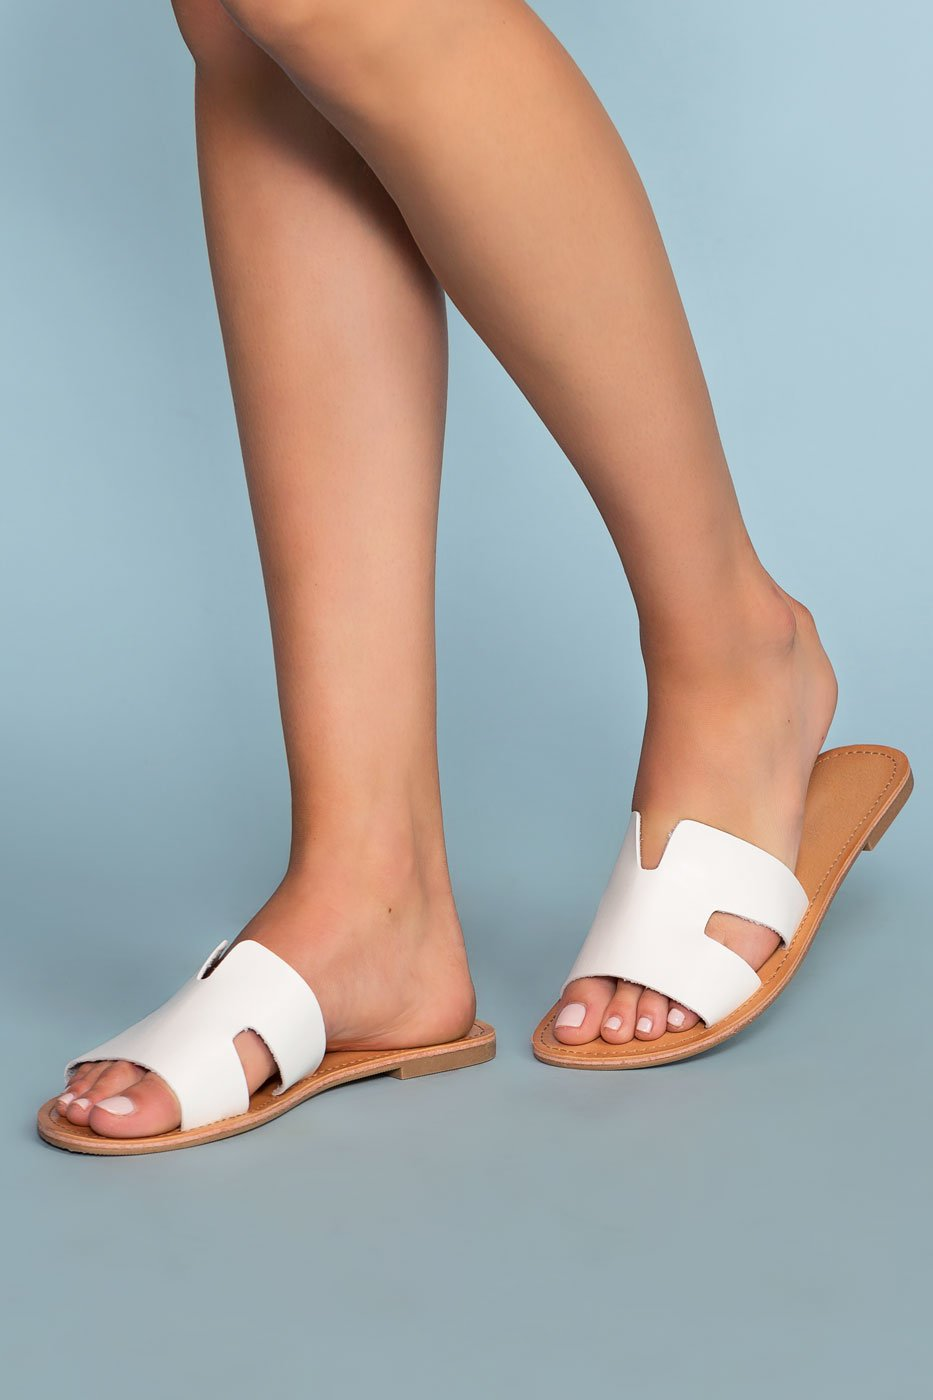 Sandals - Mira Slip-On Sandals - White